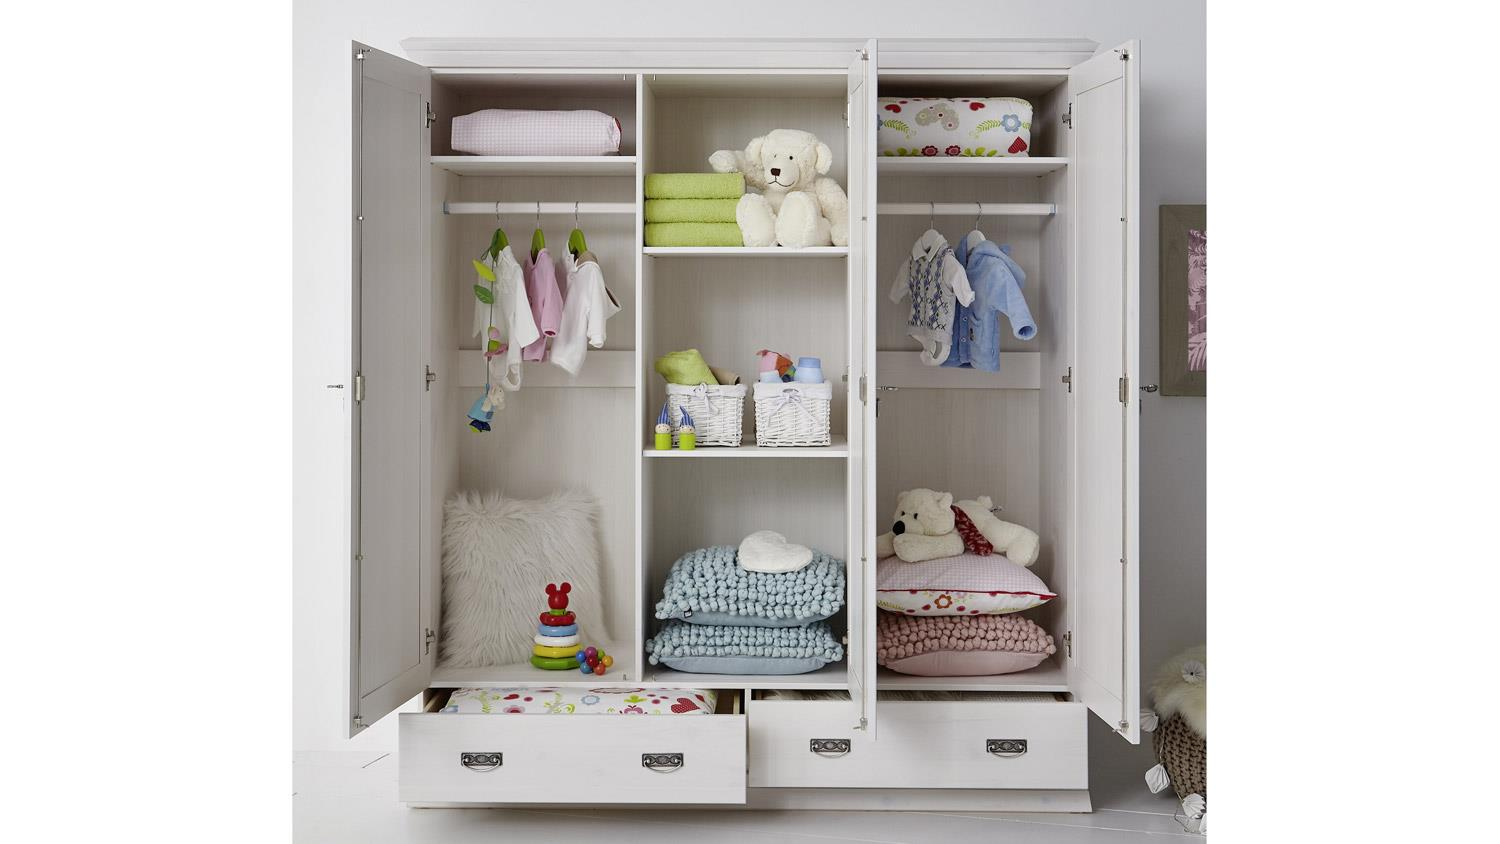 kleiderschrank odette babyzimmer schrank in kiefer wei massiv. Black Bedroom Furniture Sets. Home Design Ideas